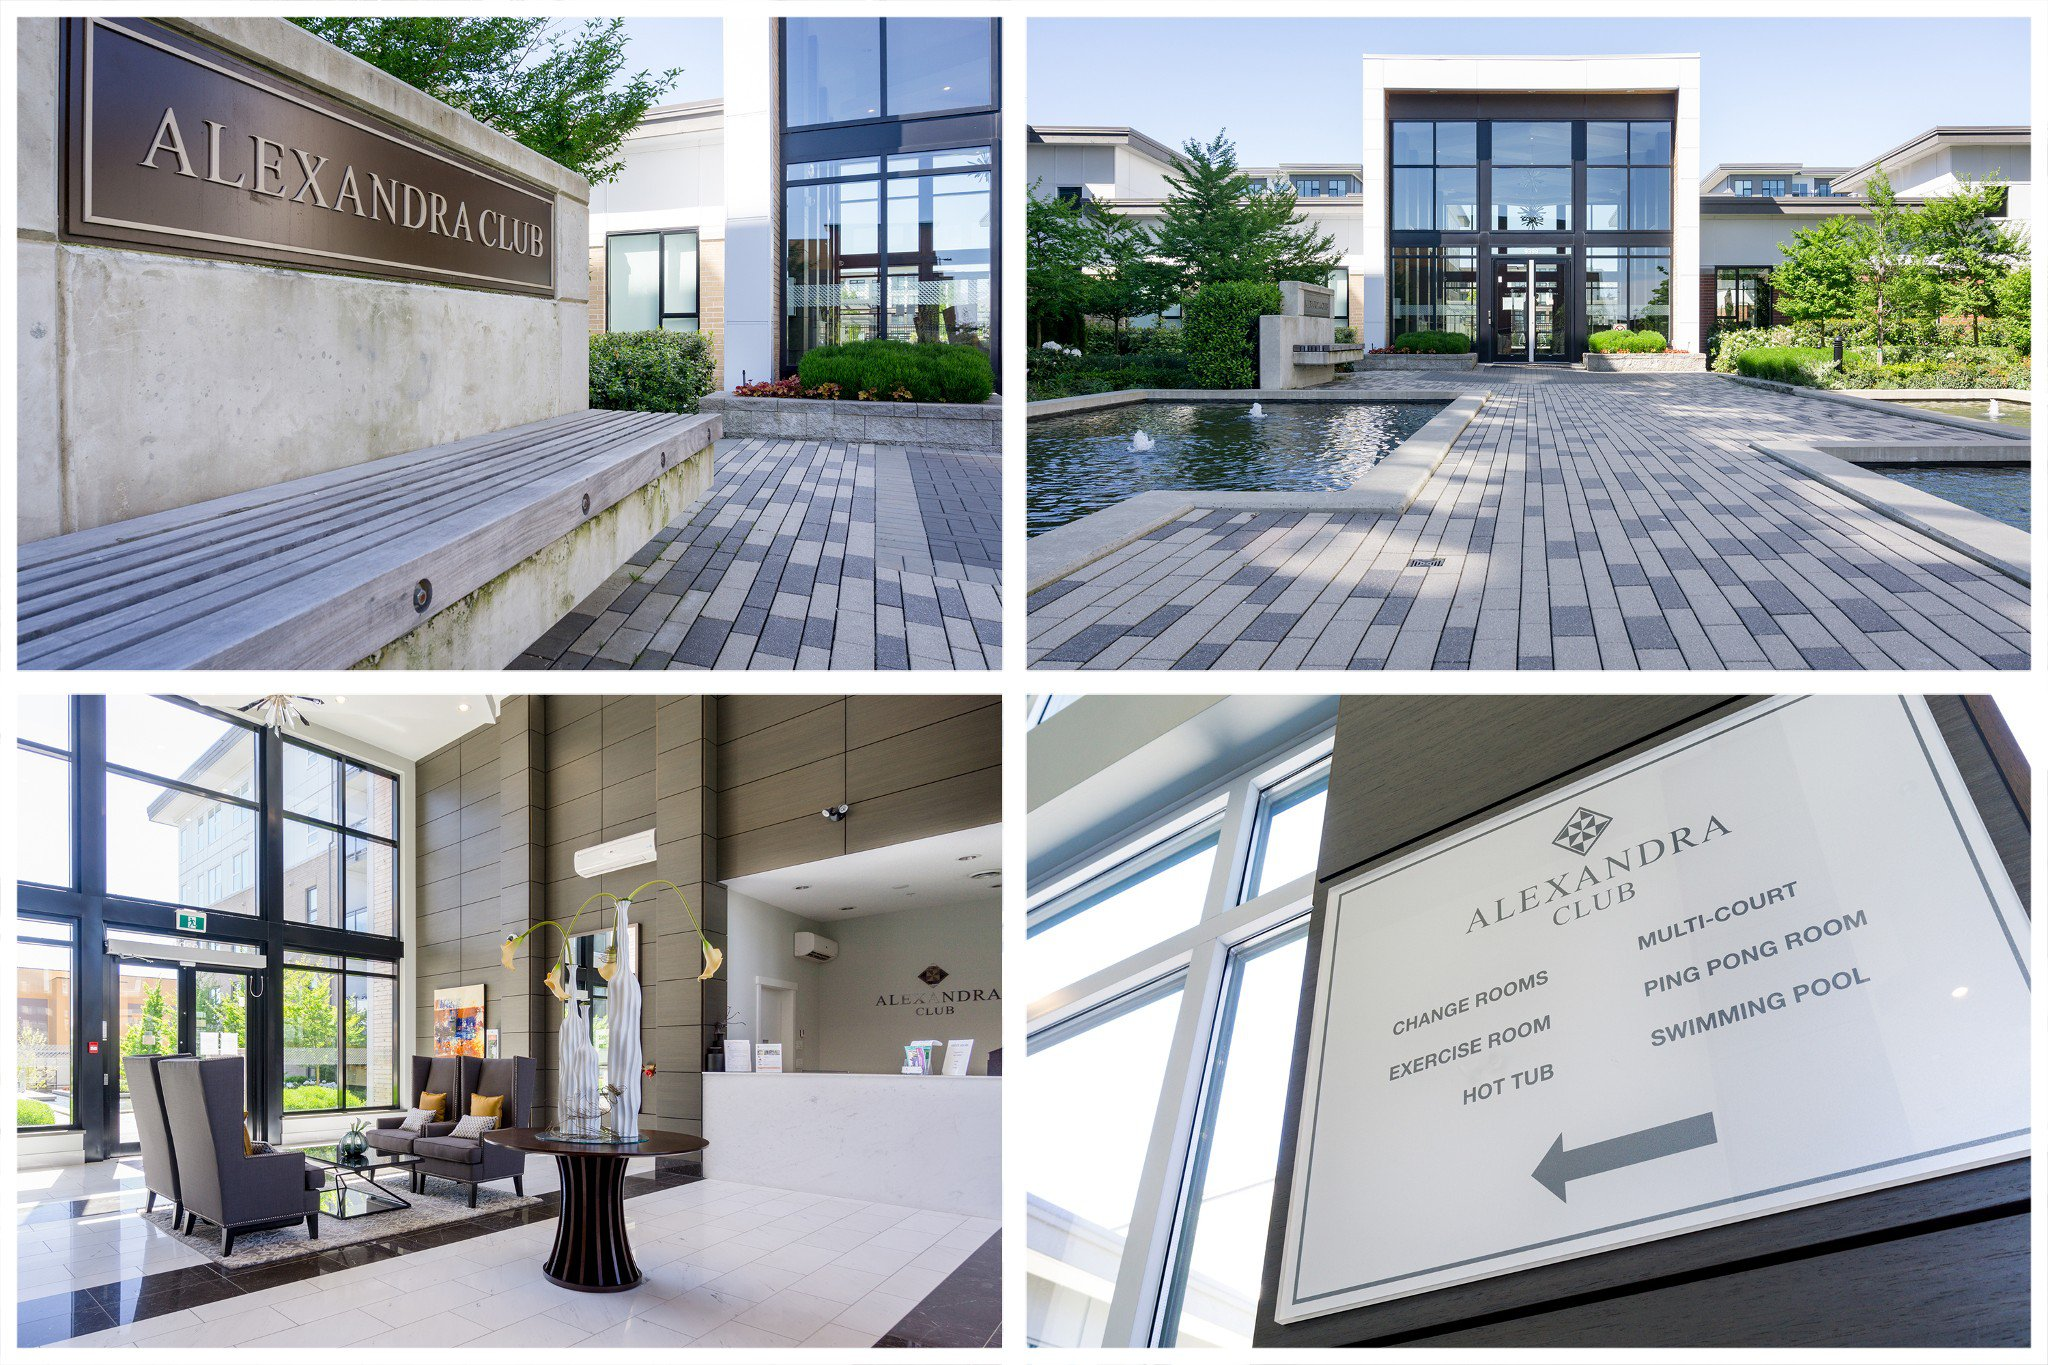 """Photo 39: Photos: 402 9311 ALEXANDRA Road in Richmond: West Cambie Condo for sale in """"ALEXANDRA COURT"""" : MLS®# R2266613"""